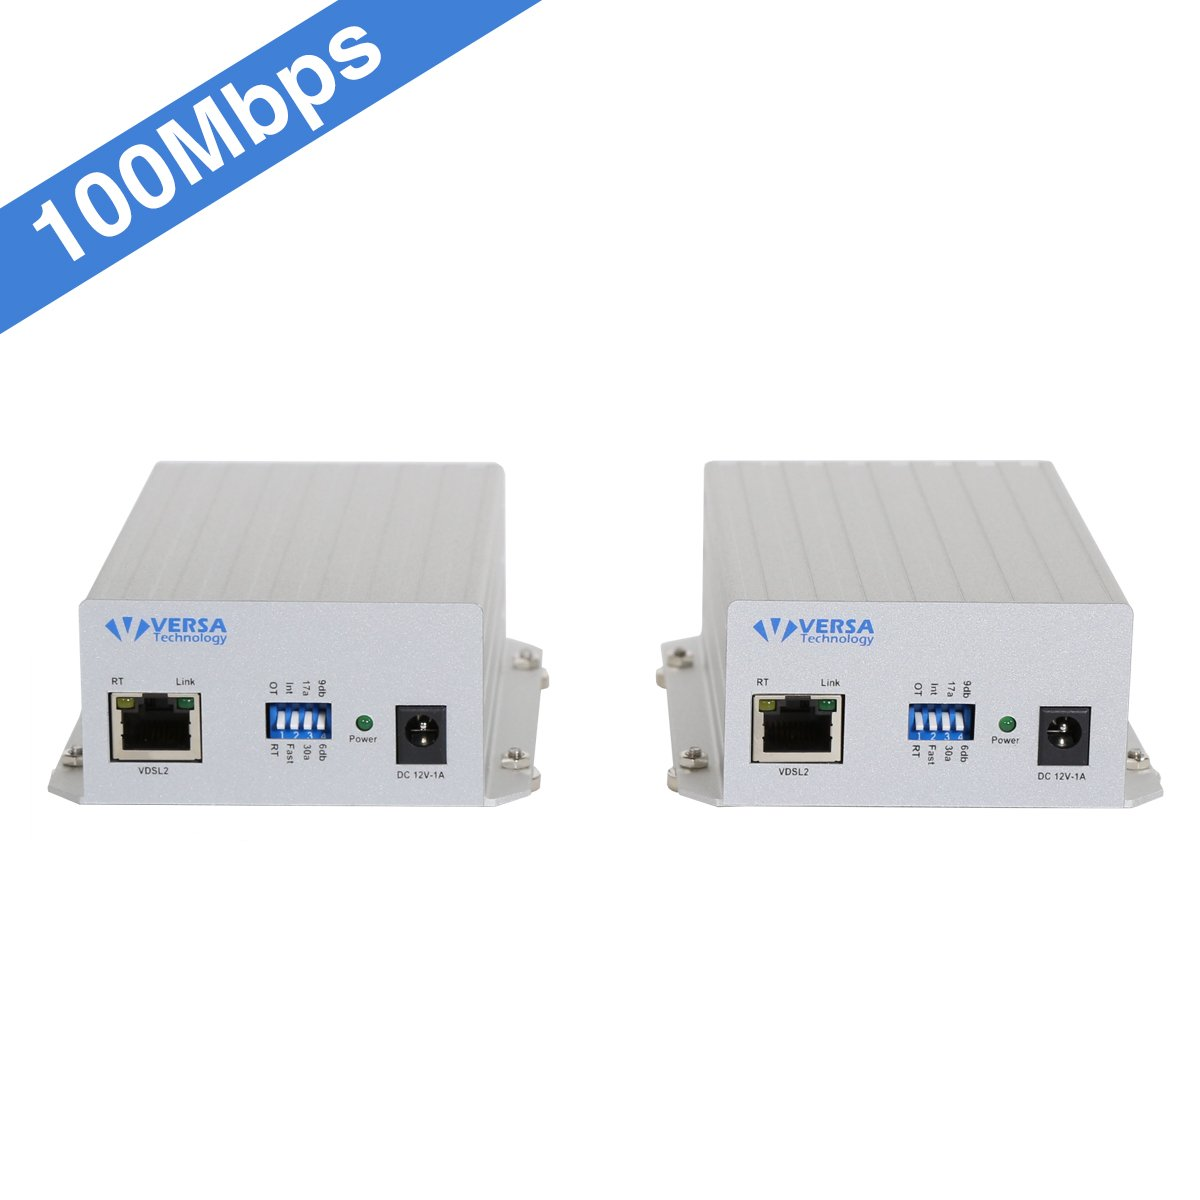 VX-VEB160G4 (V2) Ethernet Extender Kit (Pair 2pc) Range up to 1 Mile/7000FT Over Phone Copper Wire or CAT5/CAT6 Network Cable -VDSL2, Includes Power Supply